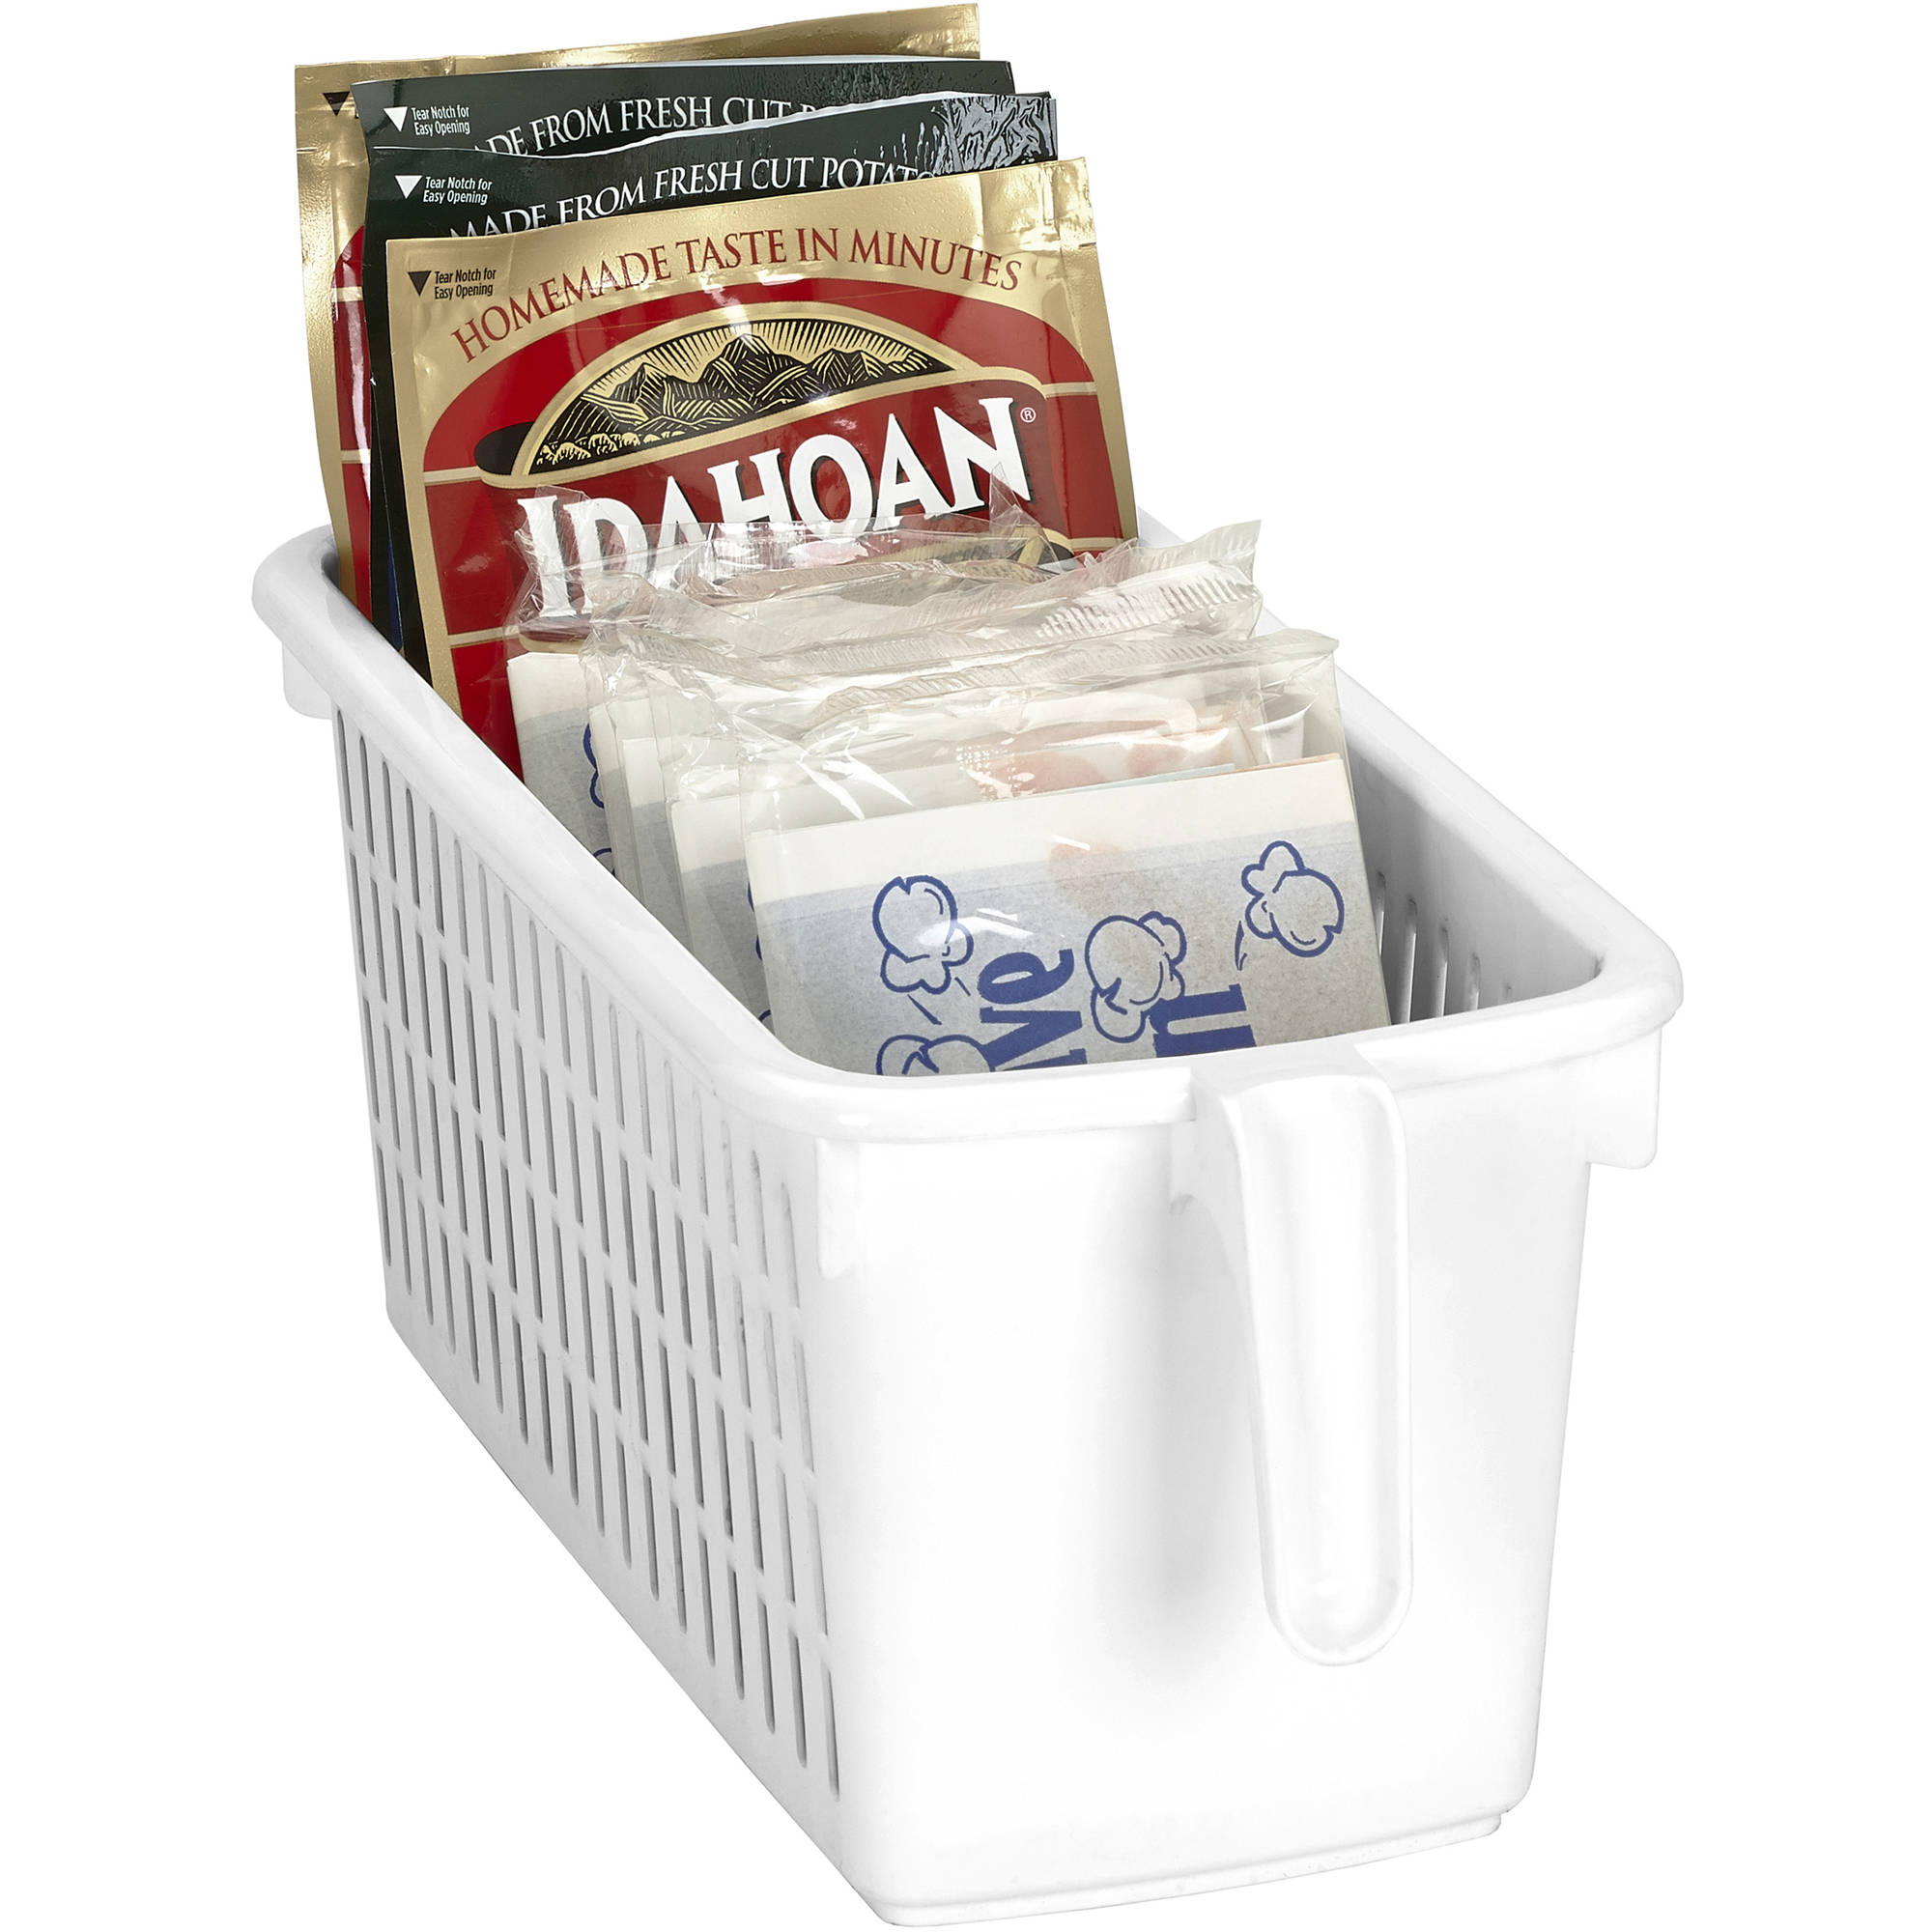 Kitchen Details Easy Pull Pantry Organizer Basket with Handle Grip, Slim